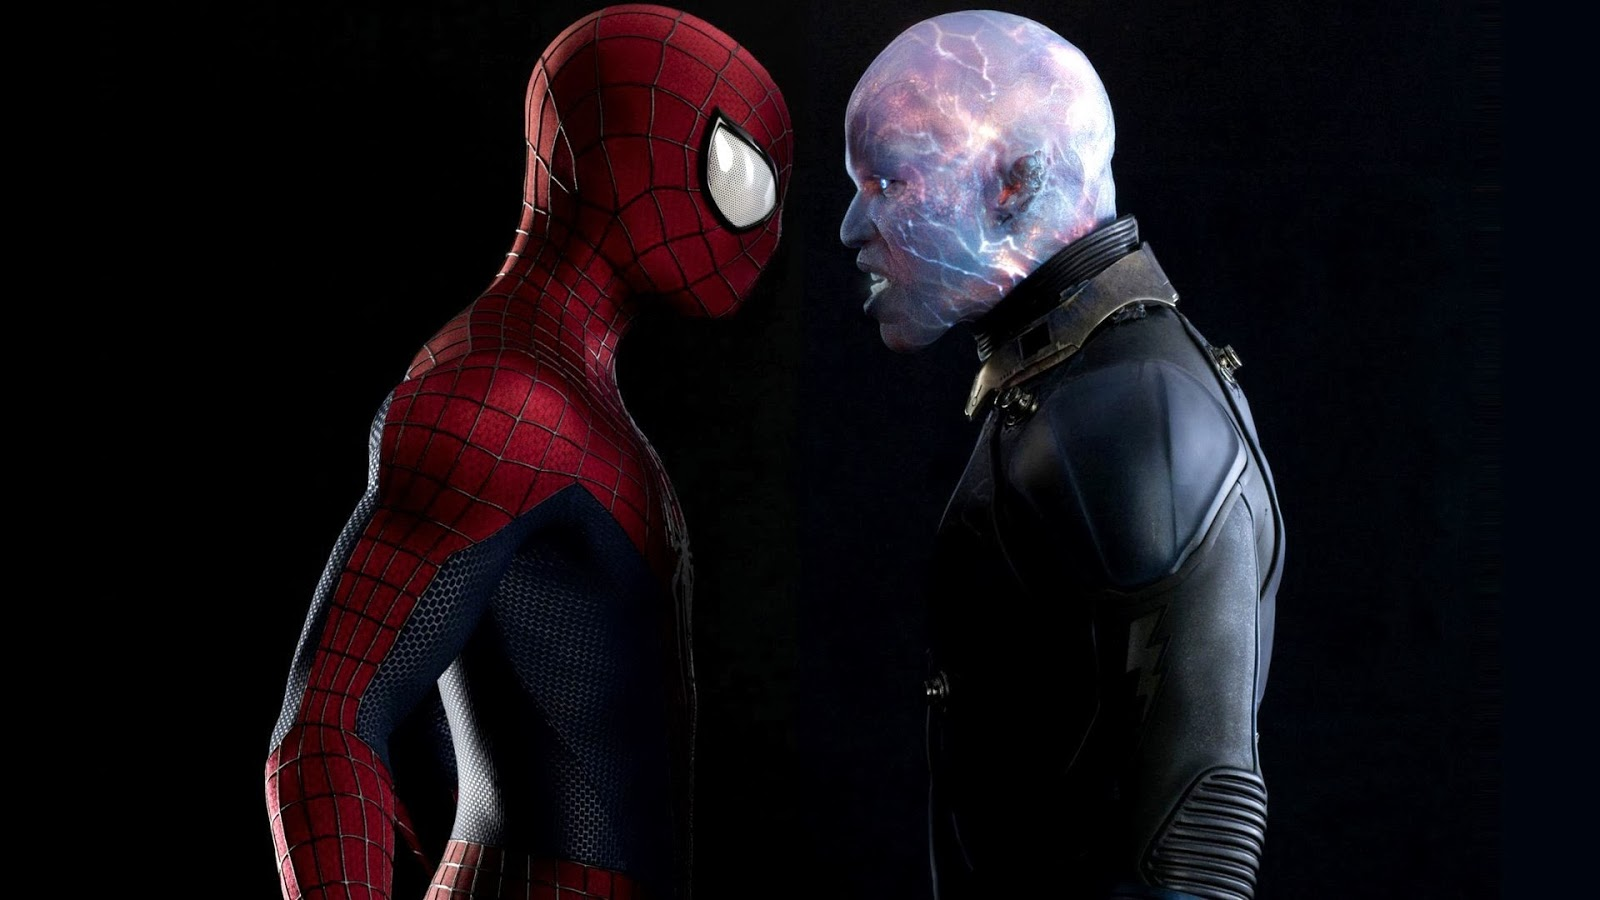 Spiderman Images HD Movie